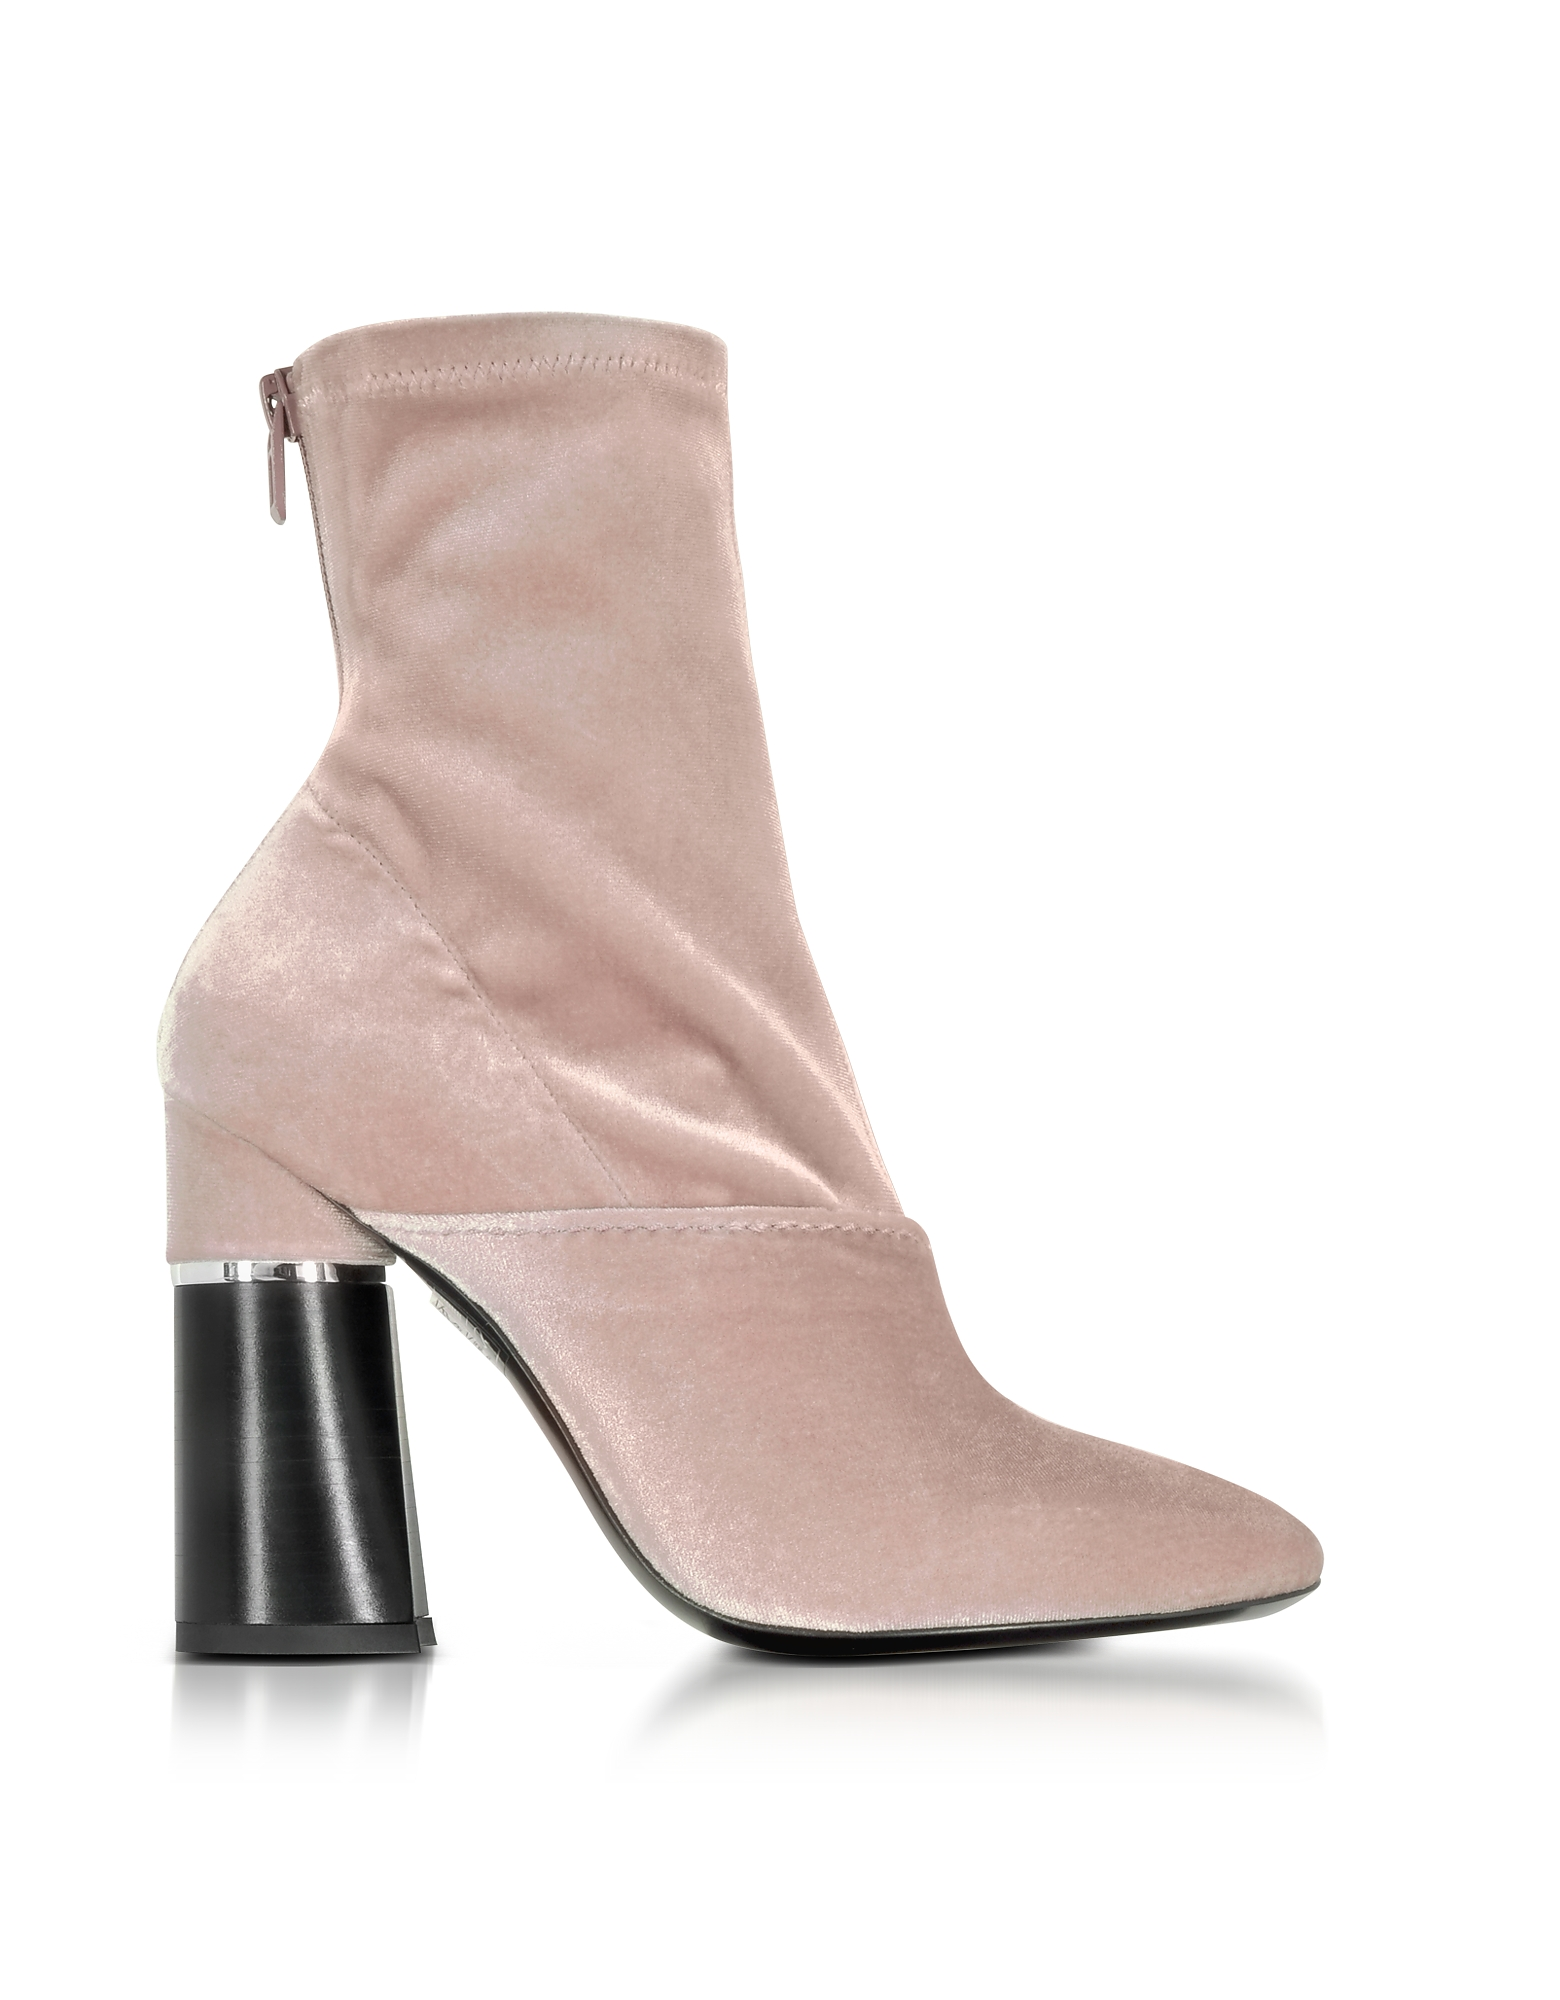 3.1 Phillip Lim Kyoto Blush Velvet Stretch High Heel Ankle Boots